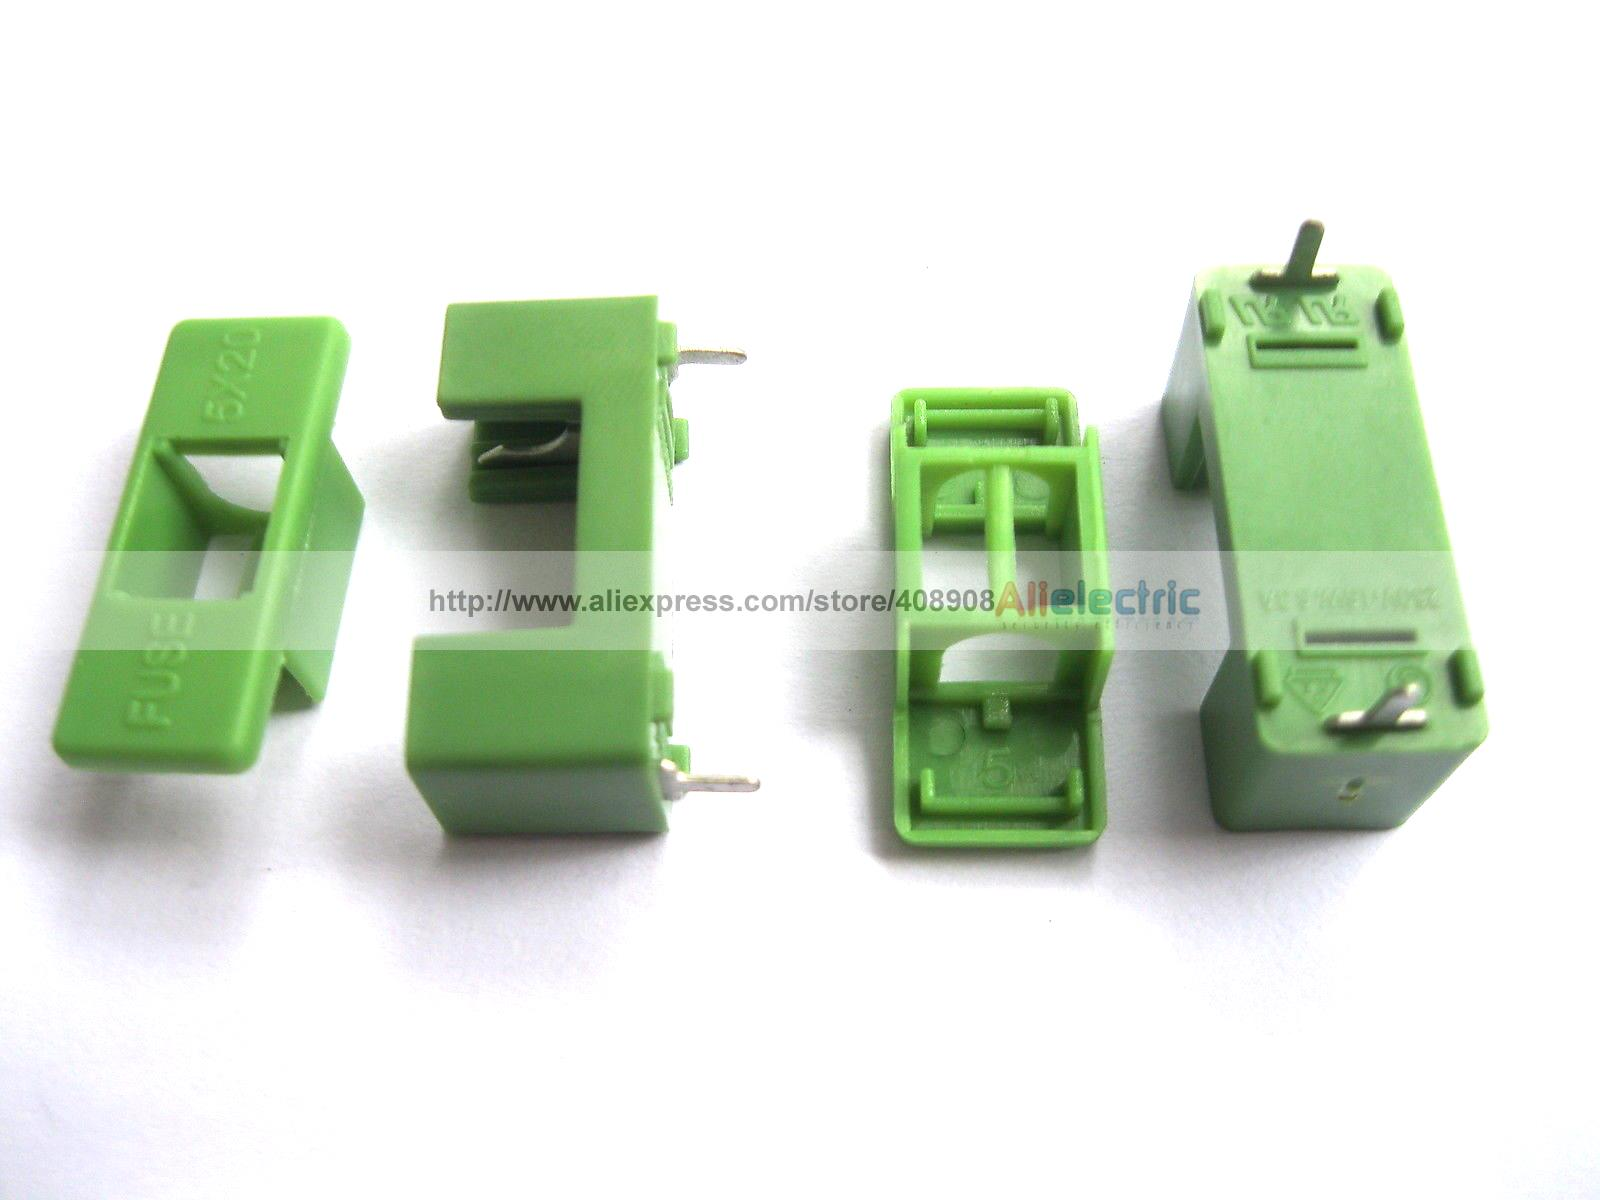 100 Pcs PTF 7 DIP Fuse Holder 6 3A 250V Used for 5x20 Green Color sutra